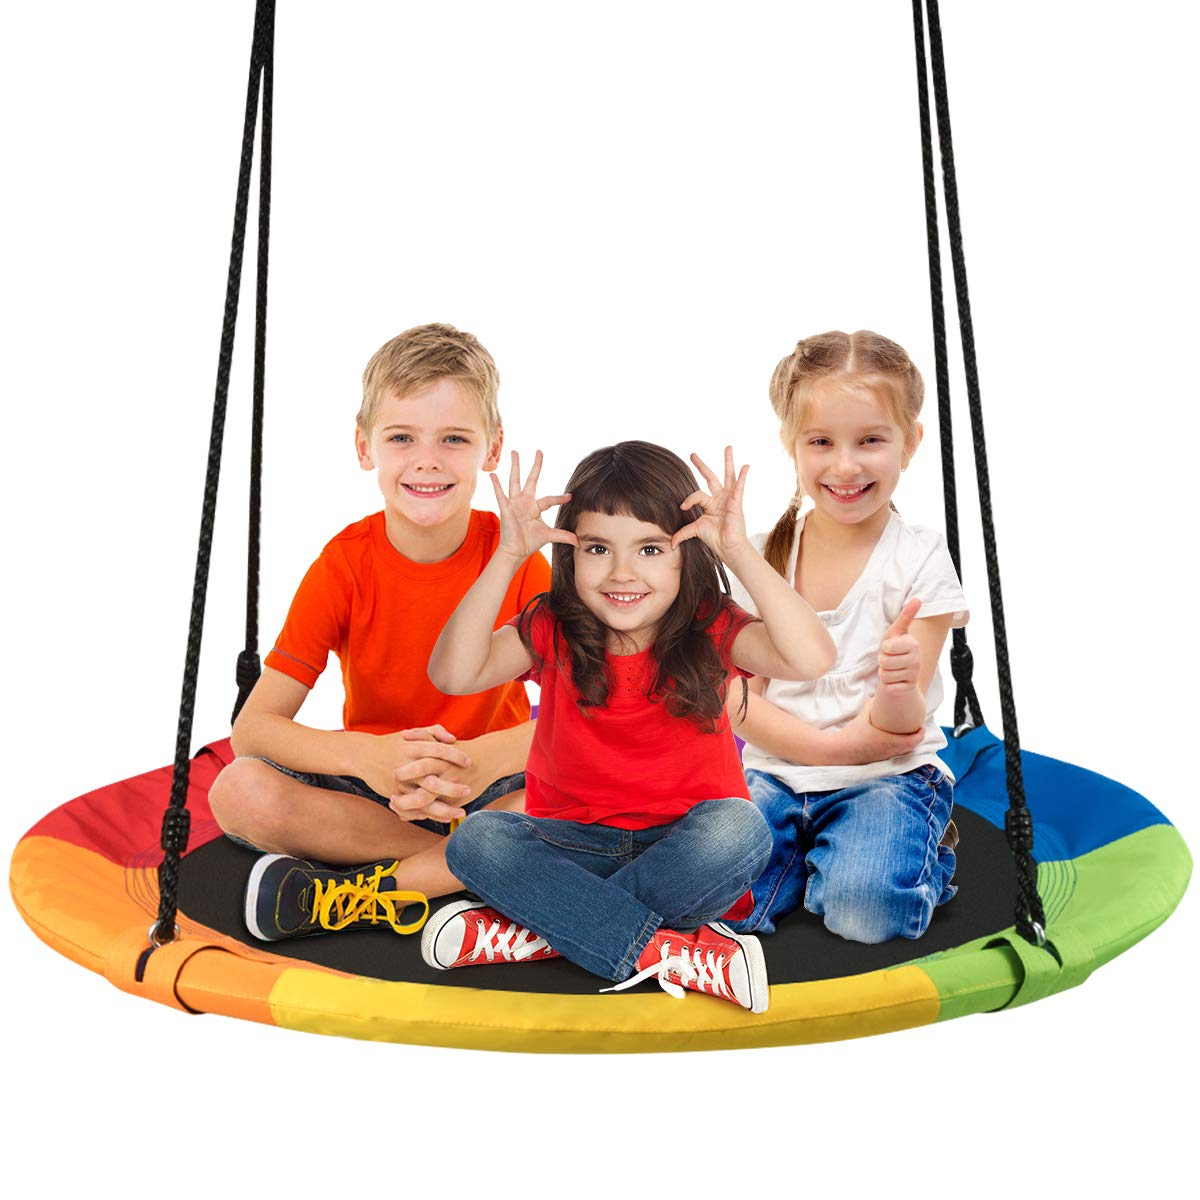 """Costzon 40"""" Waterproof Saucer Tree Swing Set, Outdoor Round Swing Colorful  – Adjustable Hanging Ropes, Safe And Sturdy Swing For Children Park Regarding Popular Dual Rider Glider Swings With Soft Touch Rope (Gallery 7 of 30)"""